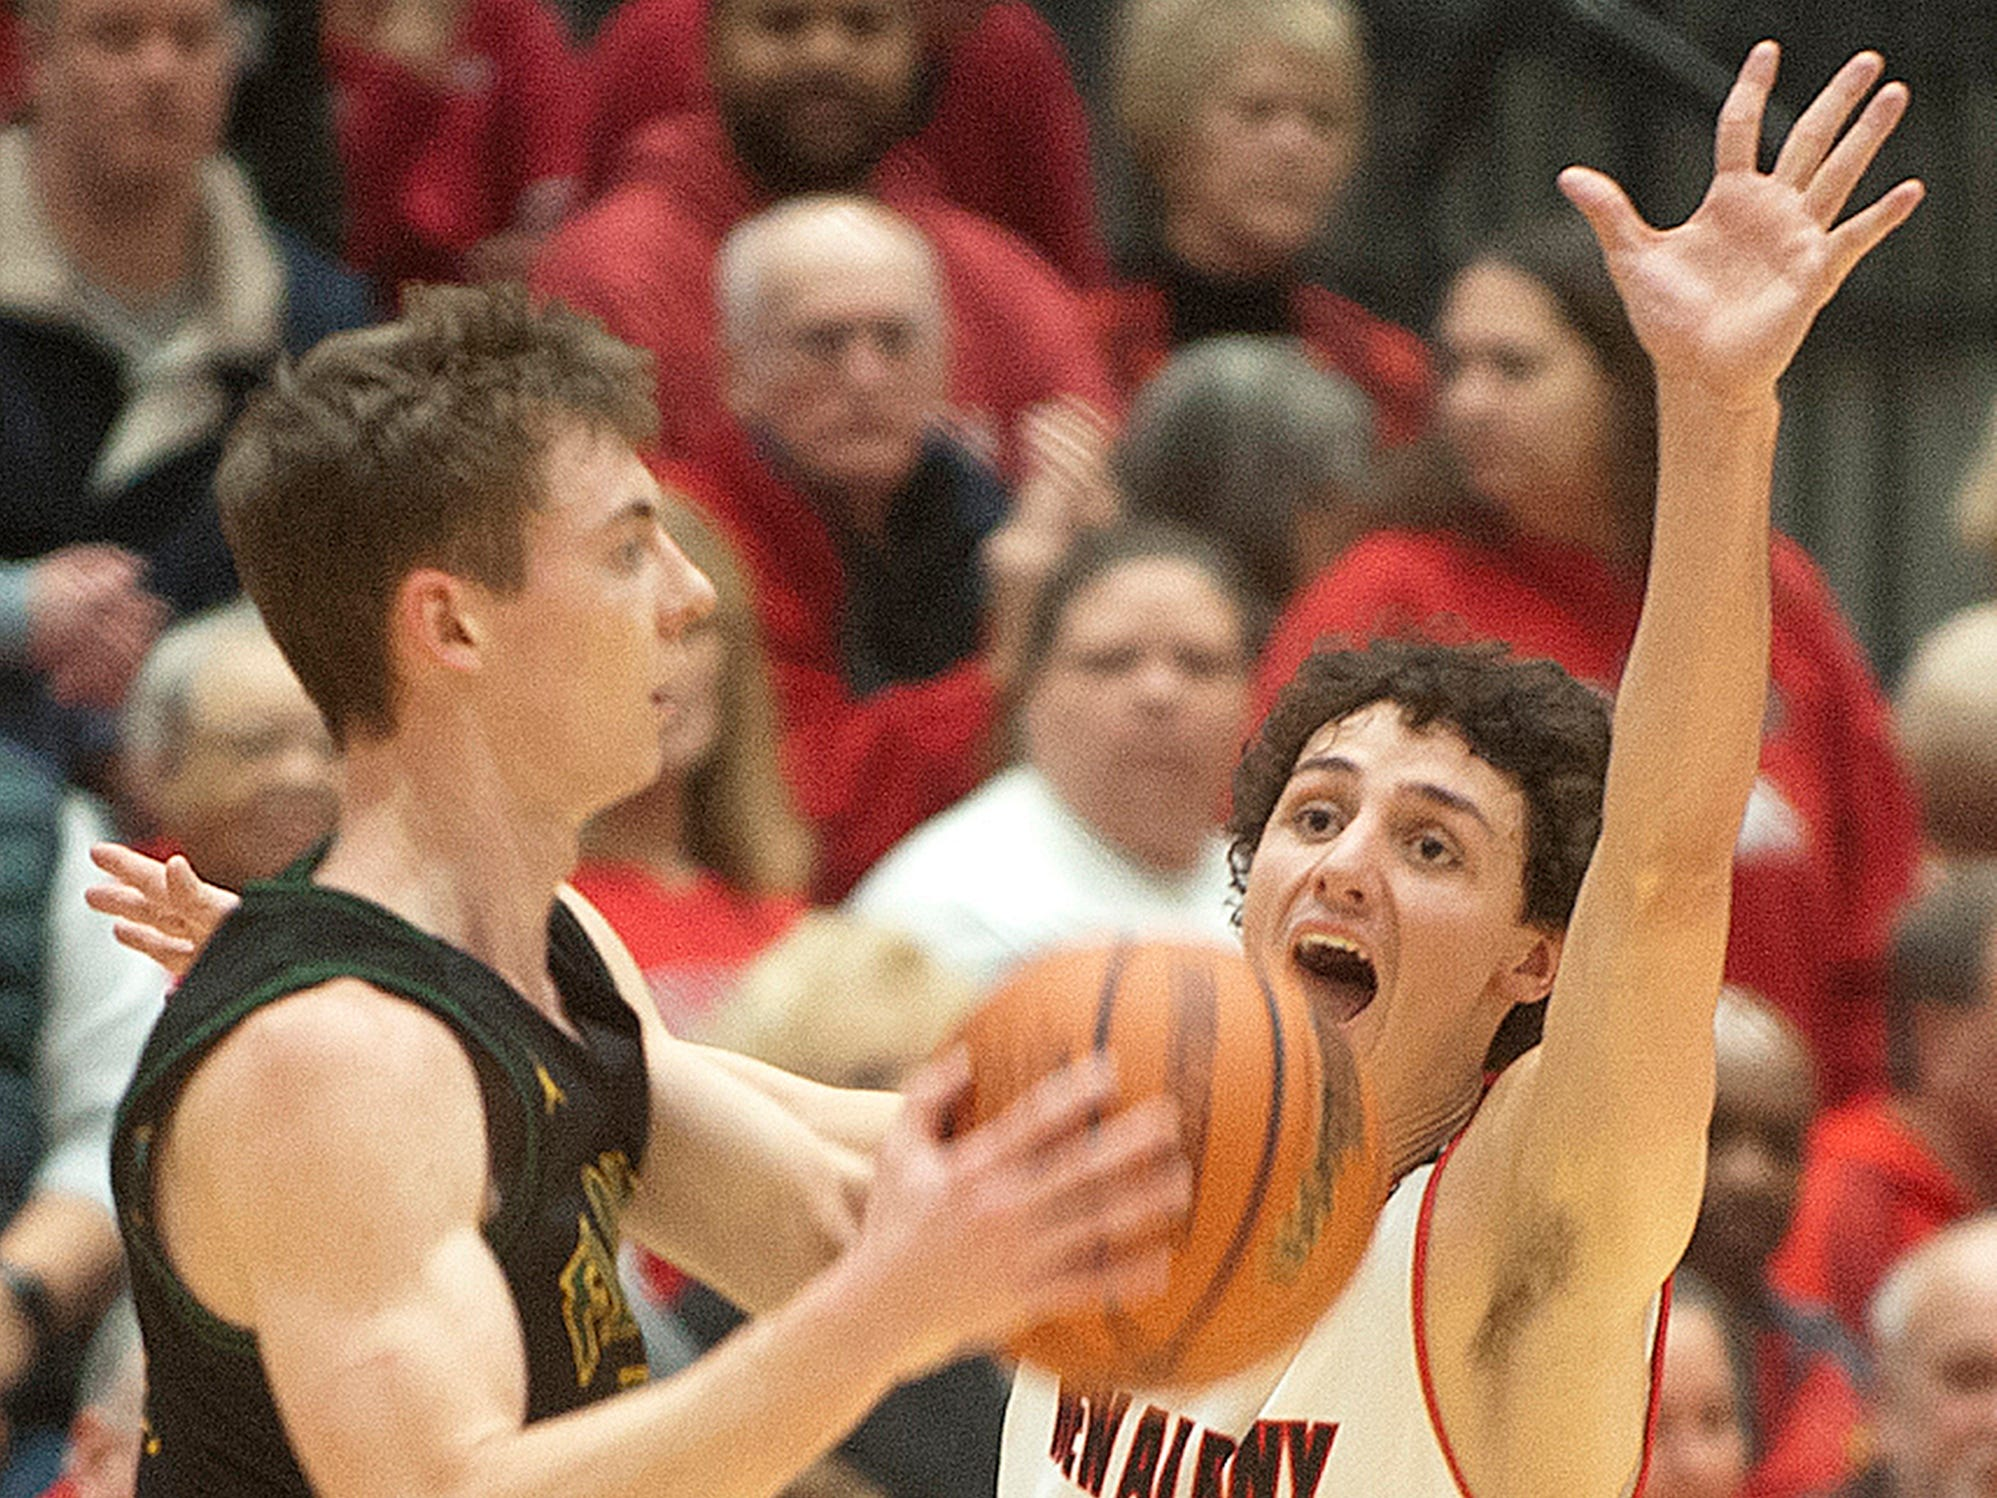 New Albany guard Landon Sprigler tries to block the passing lane as Floyd Central guard Nick Winchell looks to throw the ball.07 December 2018